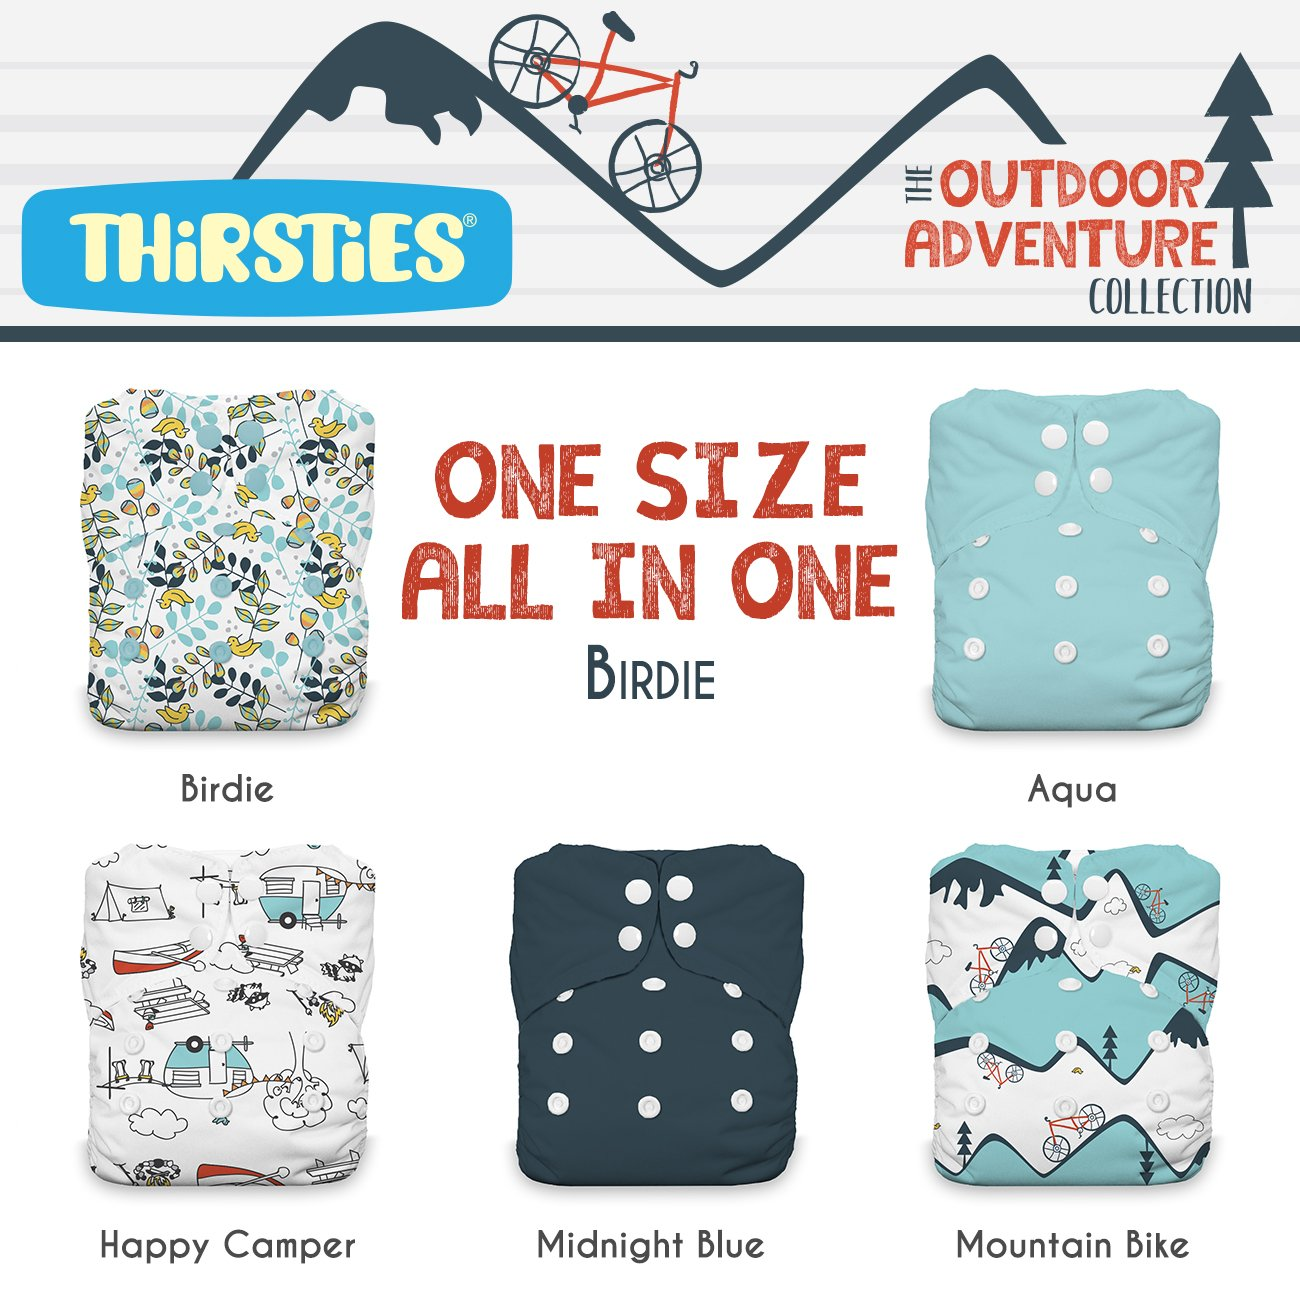 Thirsties Package, Snap One Size All In One, Outdoor Adventure Collection Birdie by Thirsties (Image #1)